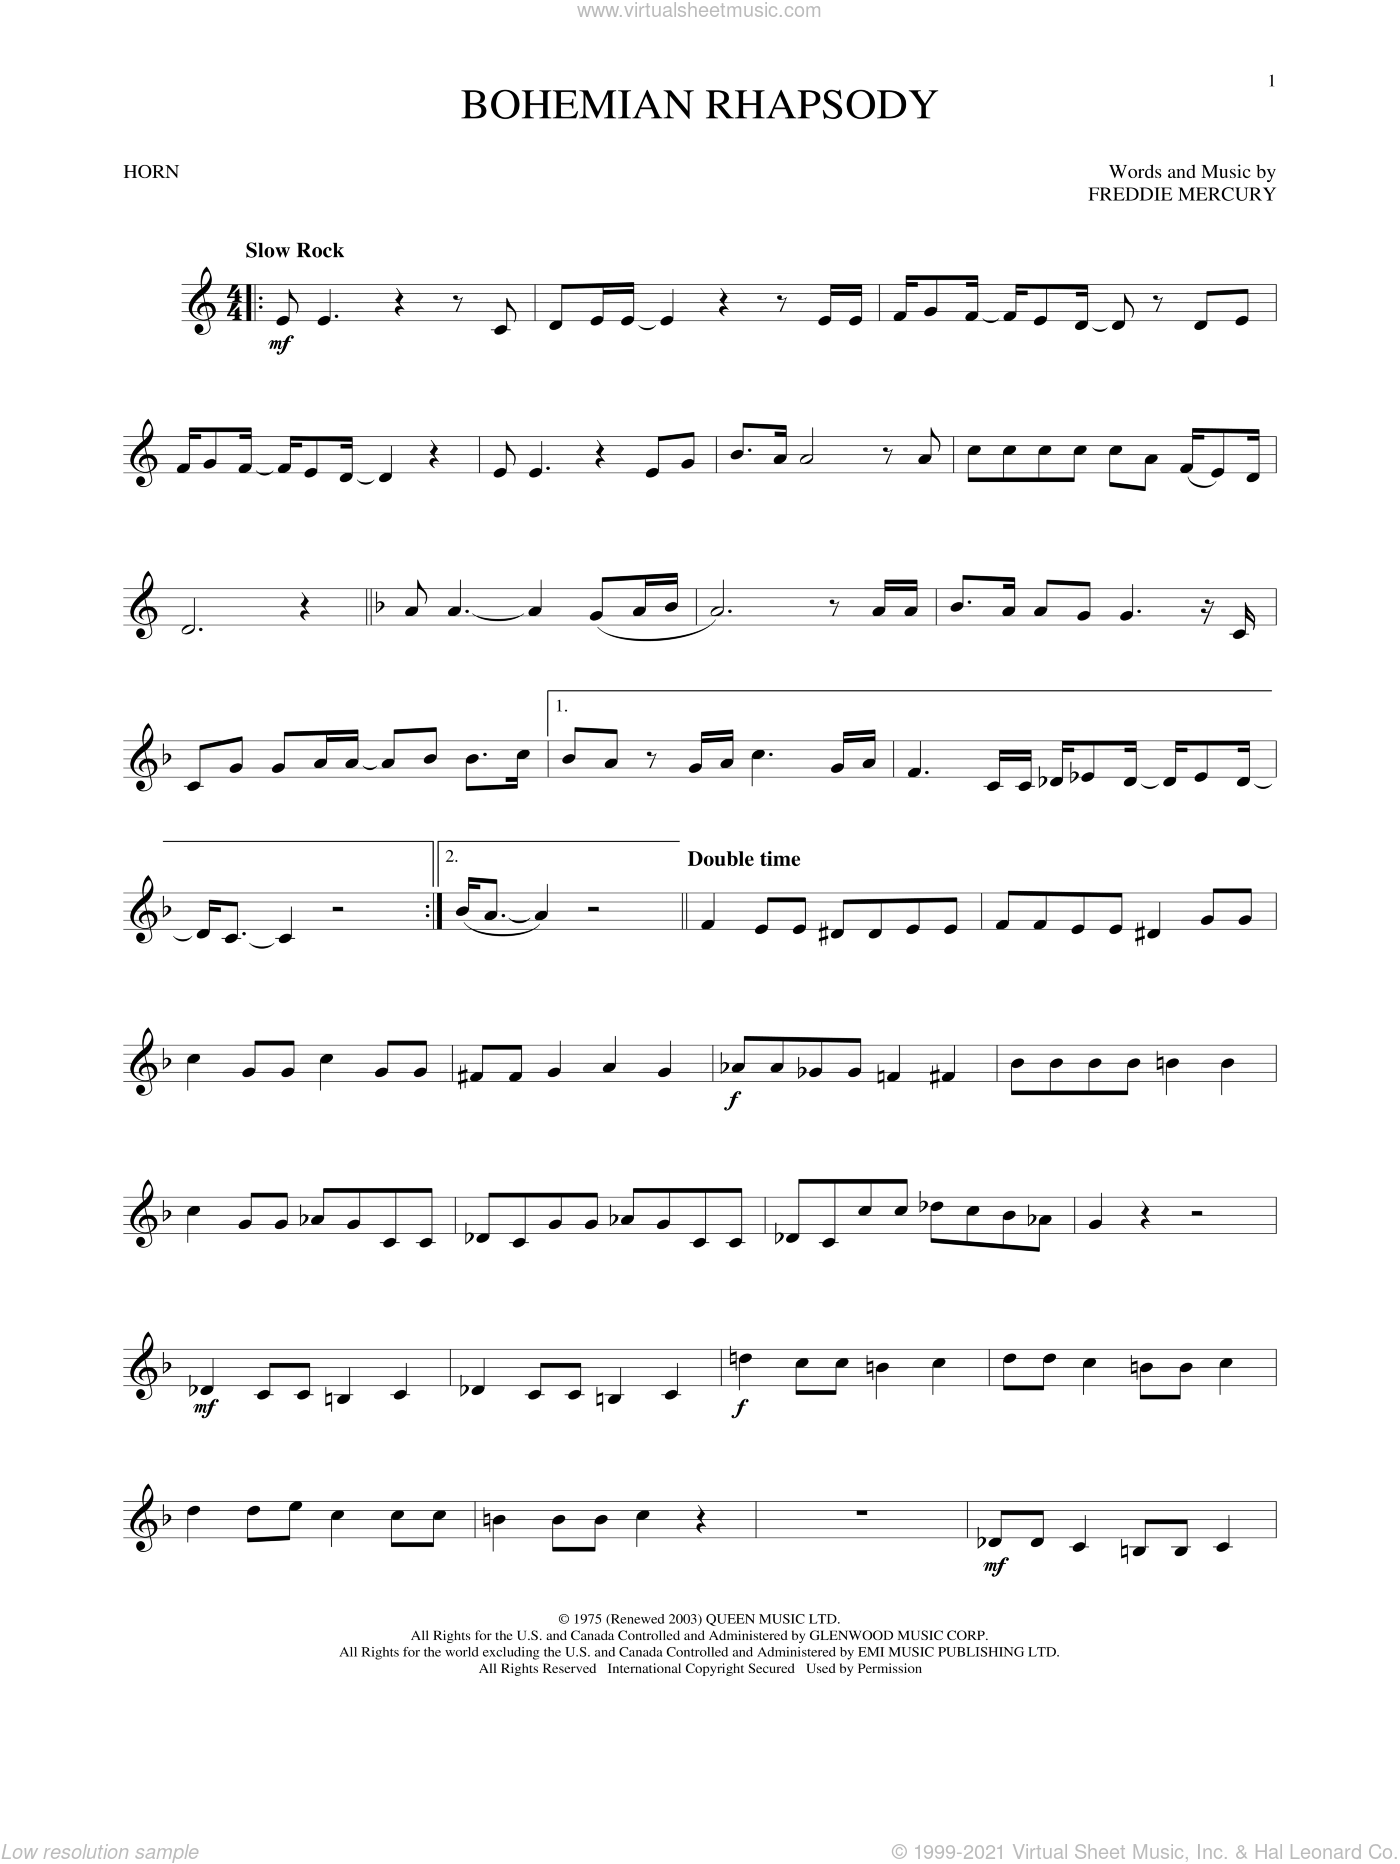 Bohemian Rhapsody sheet music for horn solo by Queen and Freddie Mercury, intermediate skill level